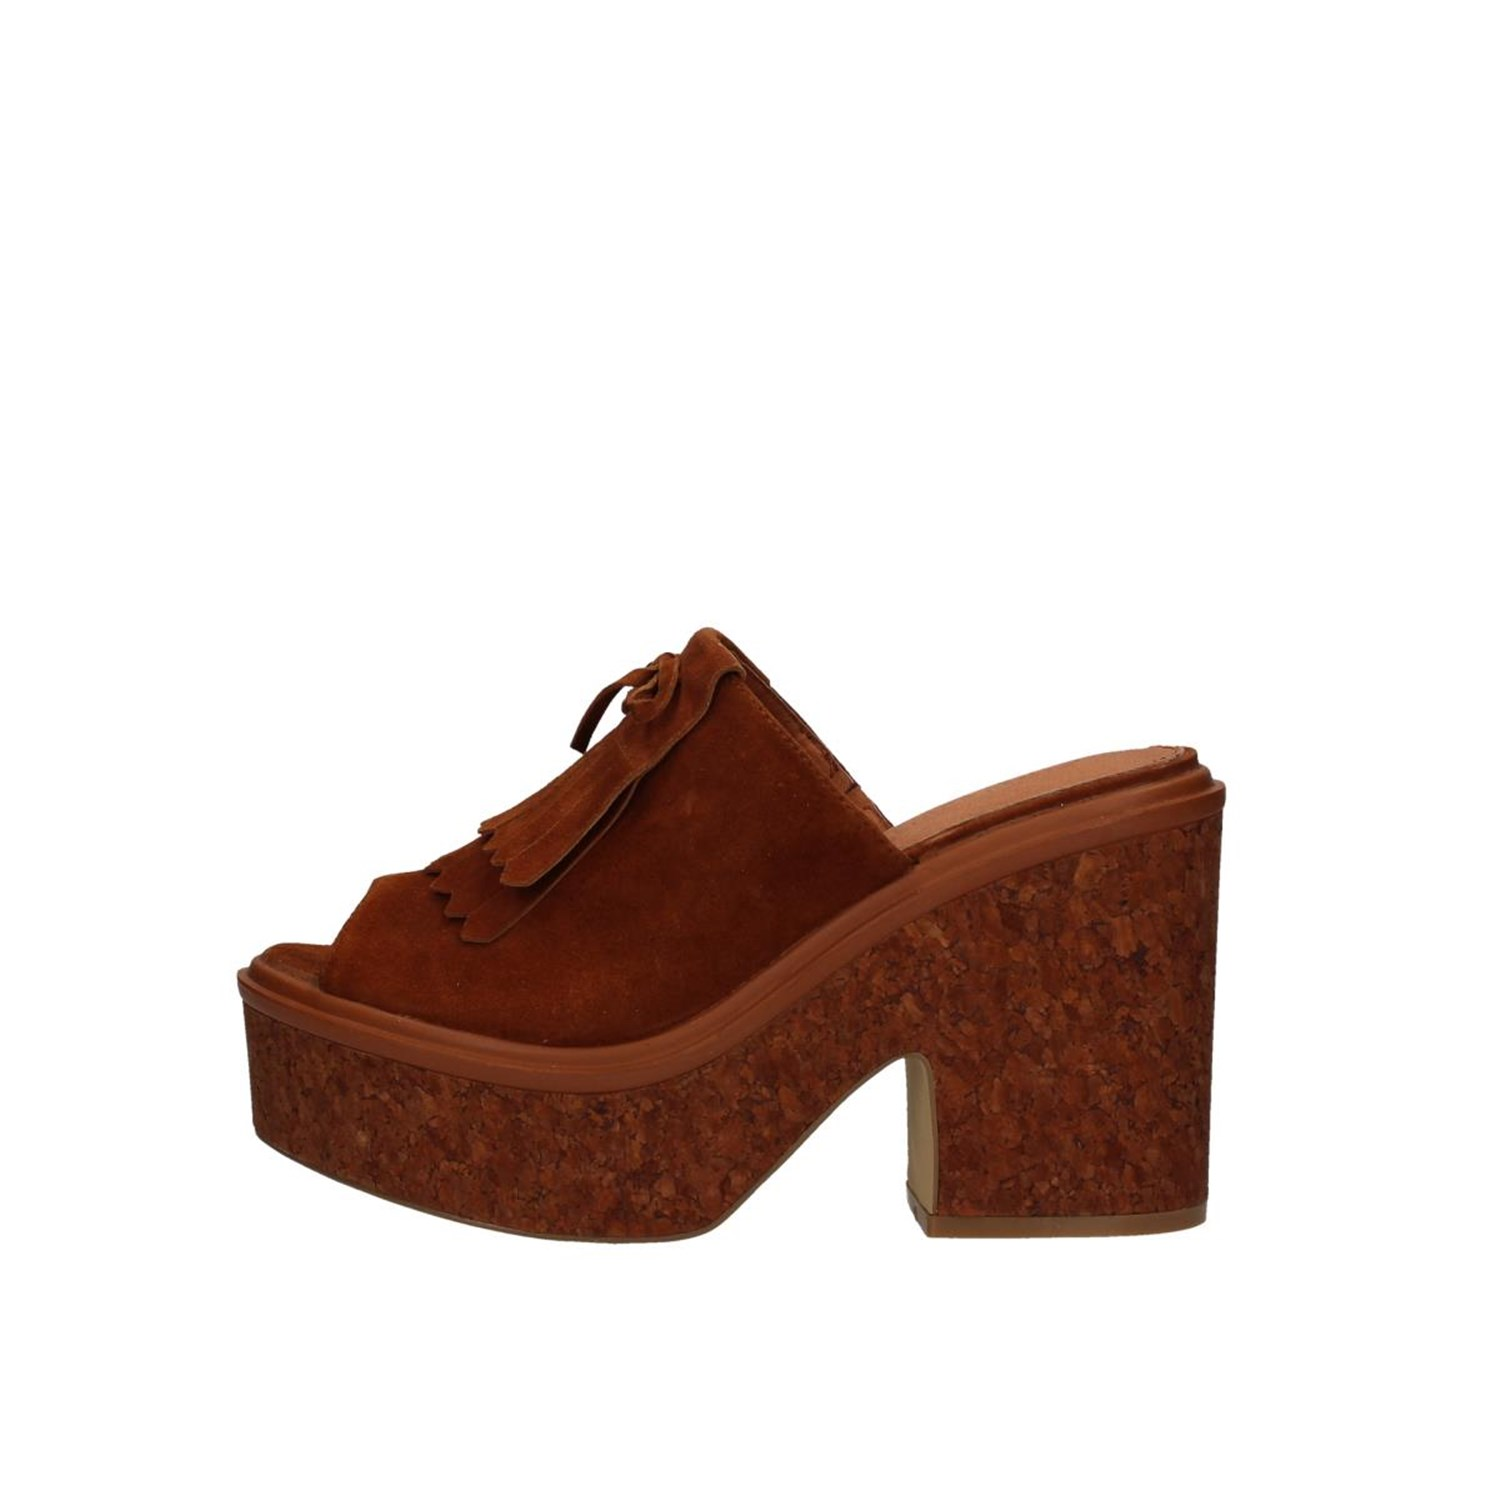 Saralopez 1855 Leather Shoes Woman